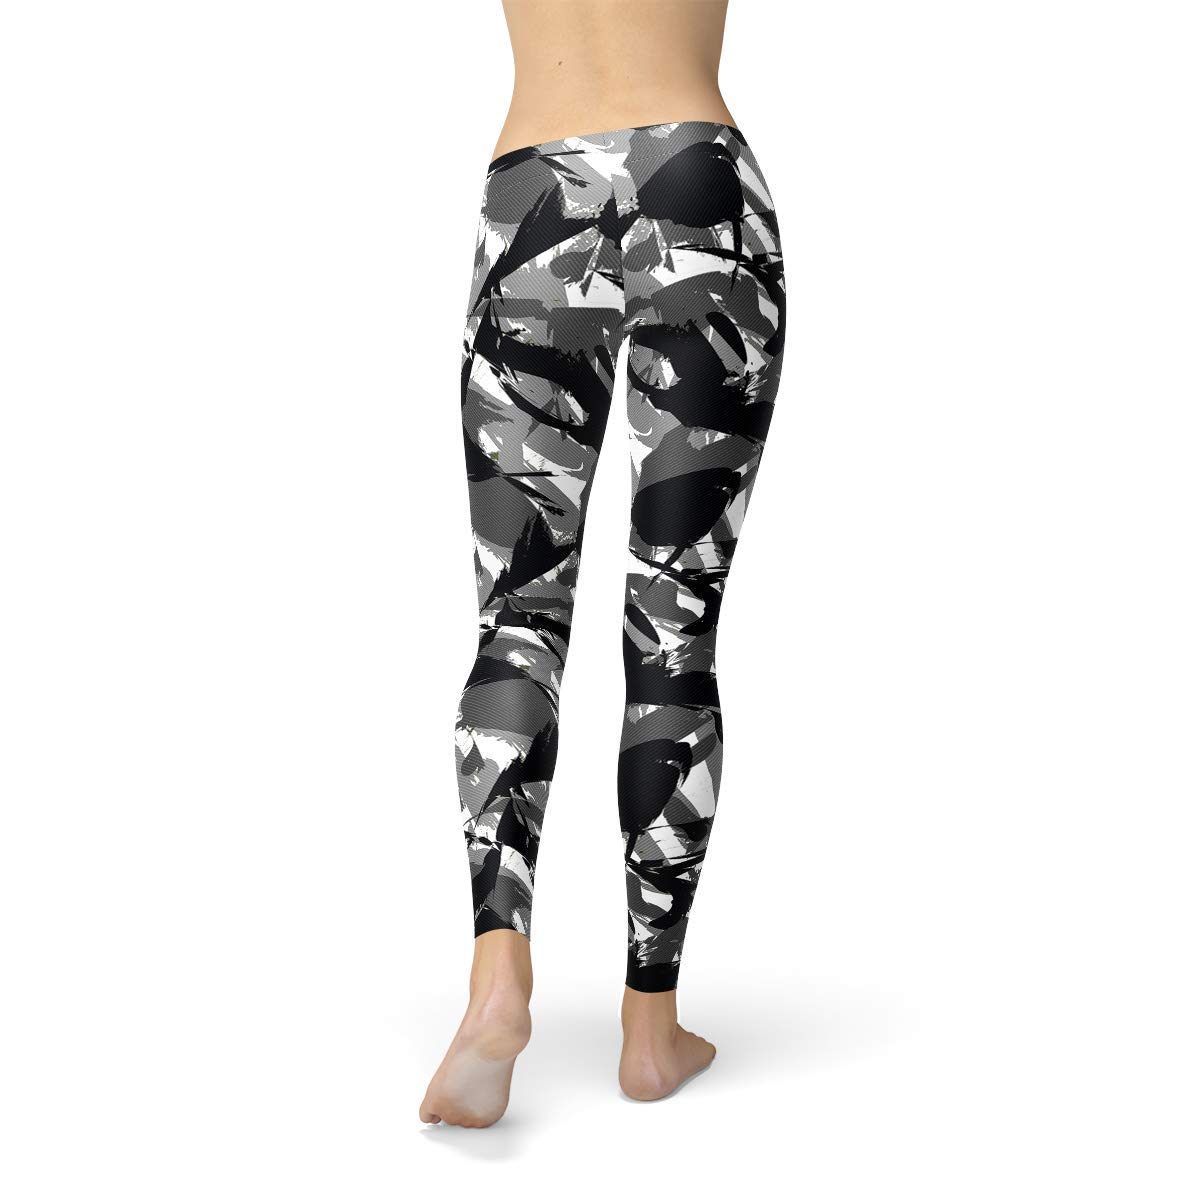 85a19827e7f57 Camo Leggings for Women Military Urban Camouflage Print Squat Proof Workout  Pants at Amazon Women's Clothing store: